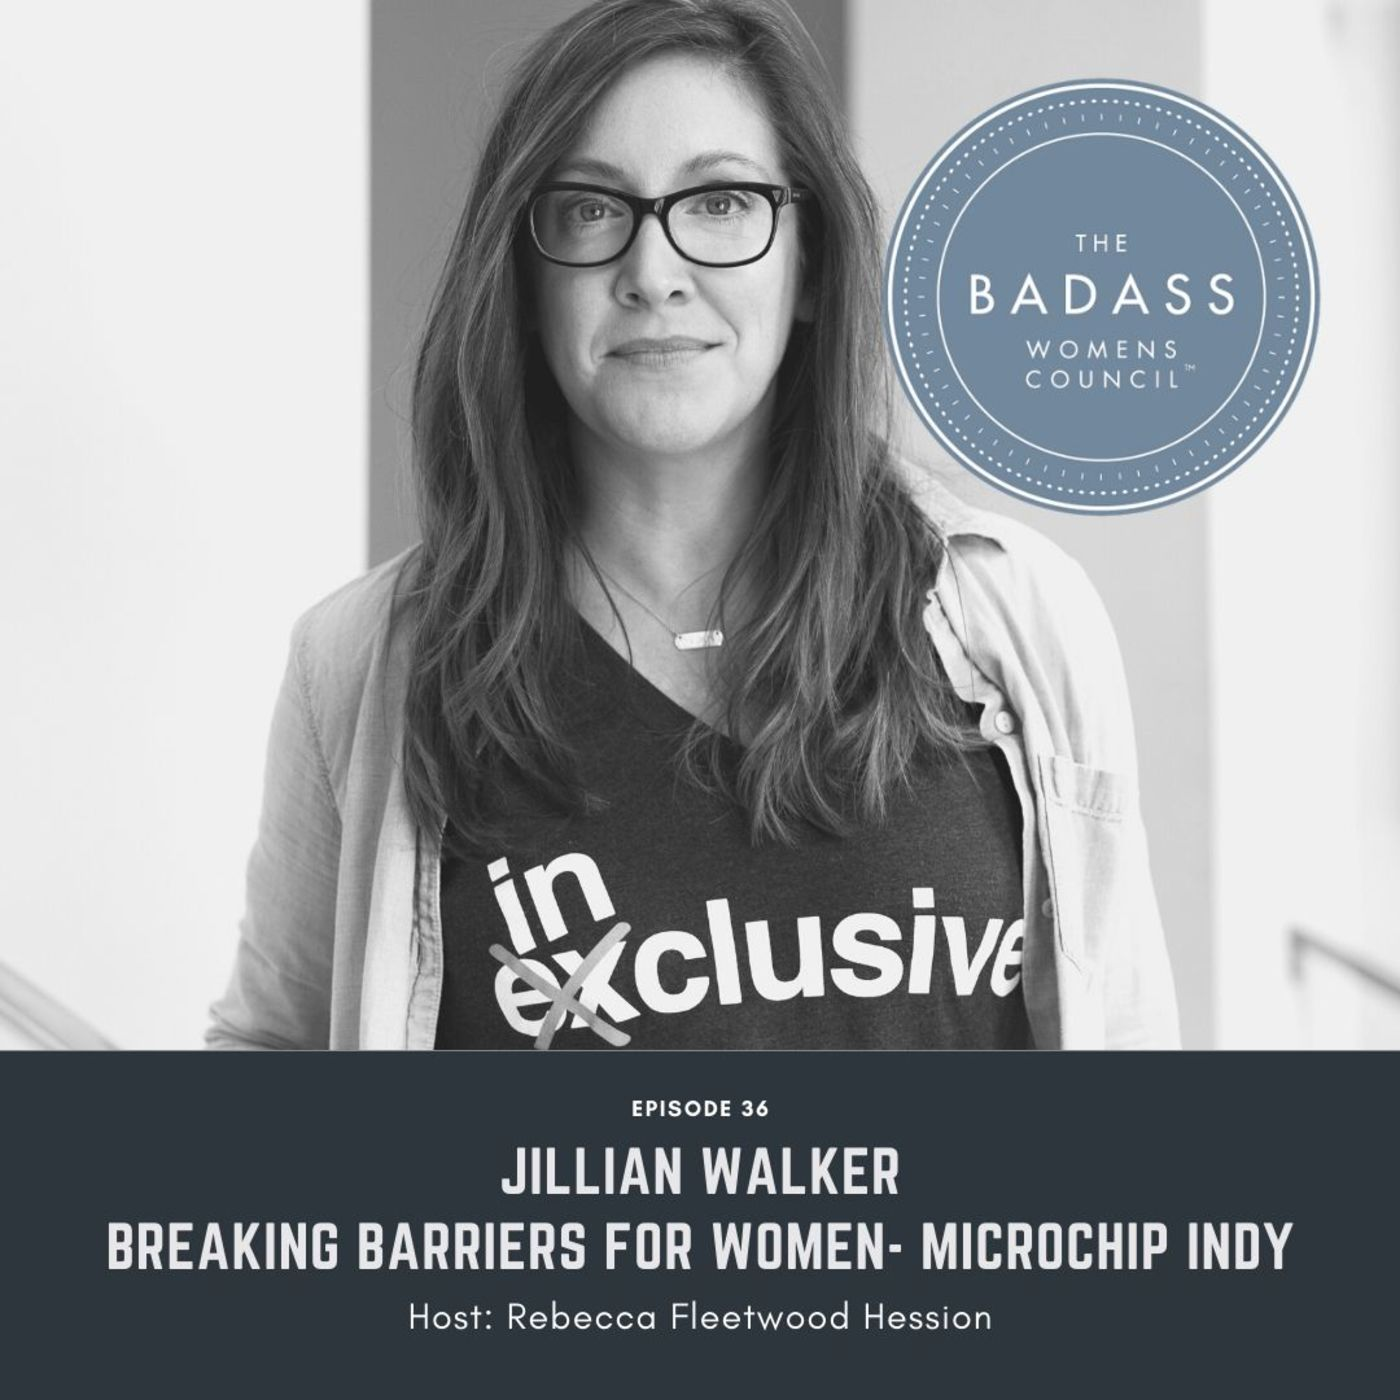 Jillian Walker: Breaking Barriers for Women